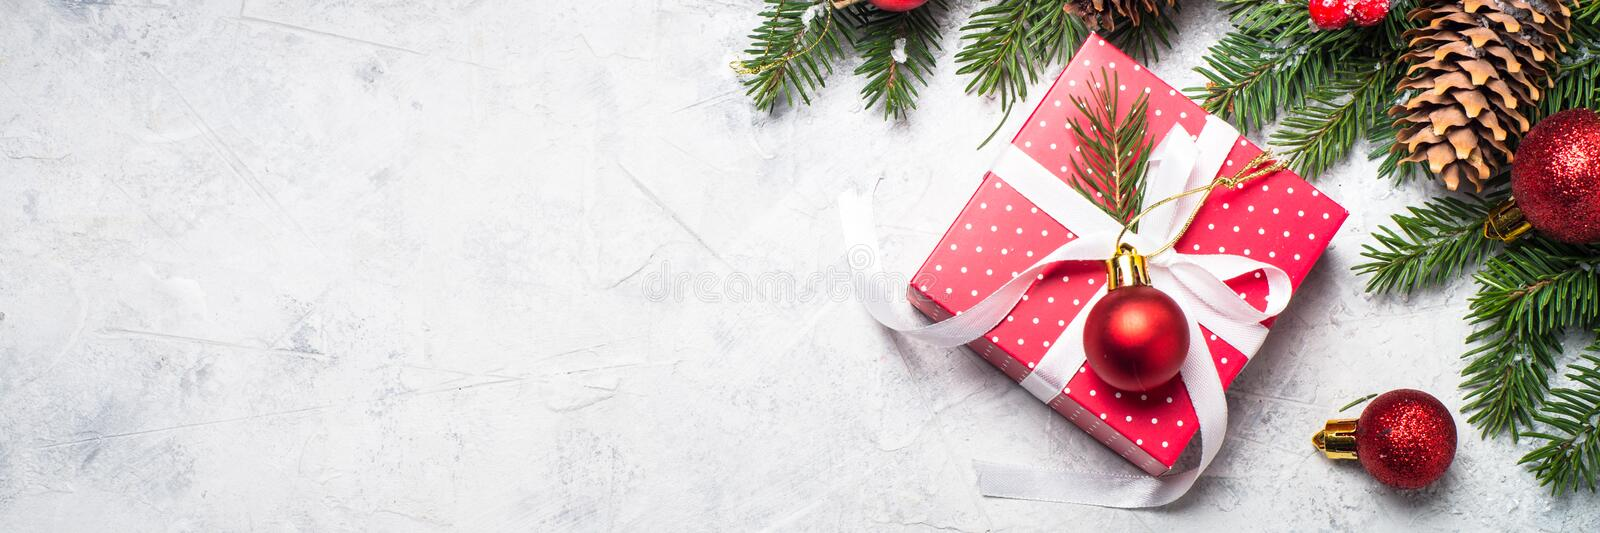 Red christmas present box, fir tree branch and decorations. stock image